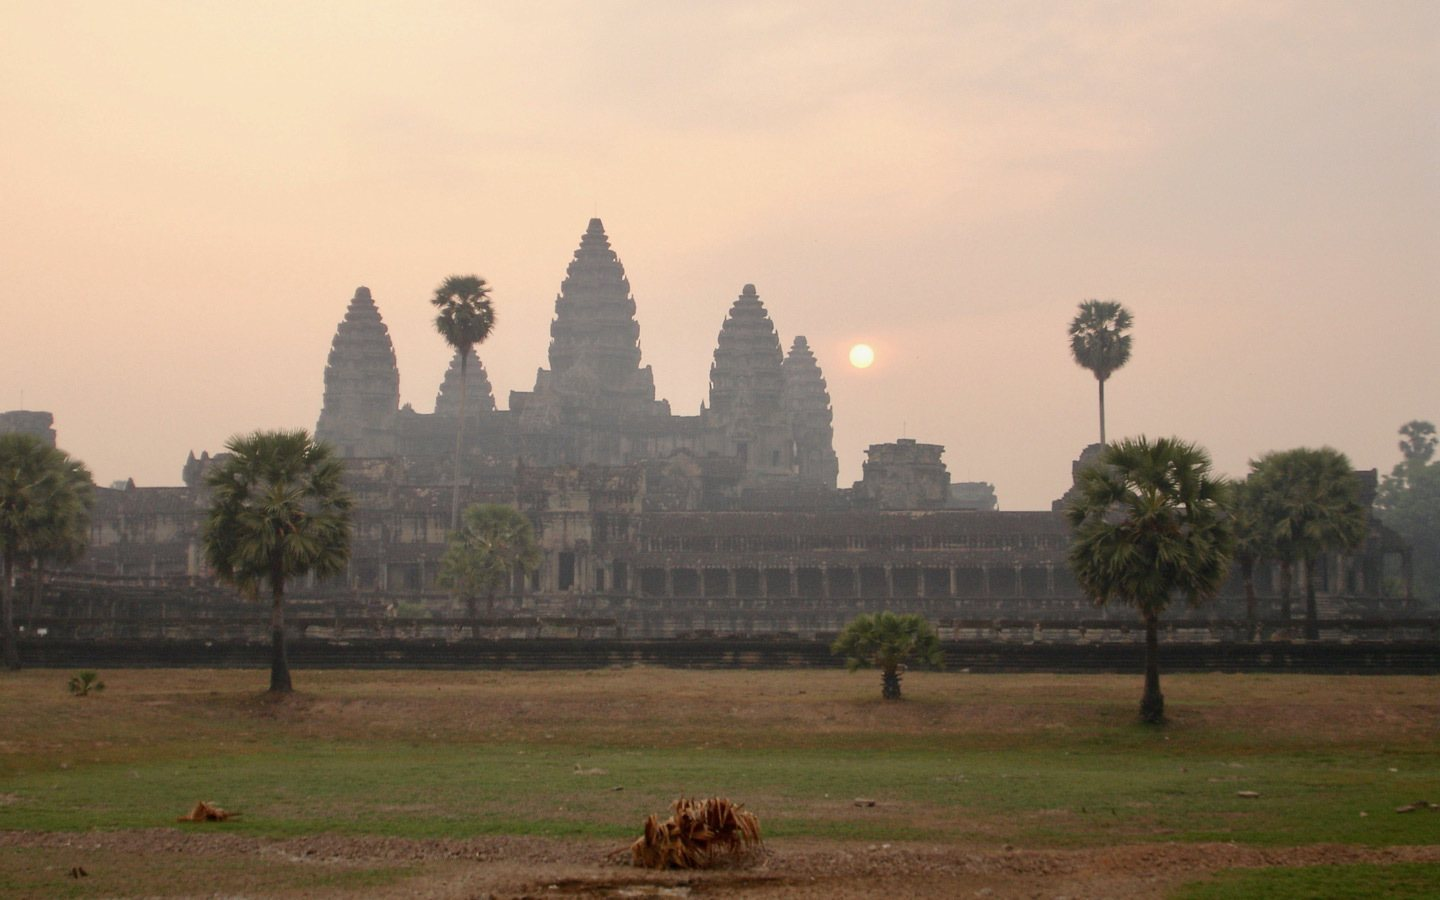 Sunrise at Angkor Wat temples in Cambodia